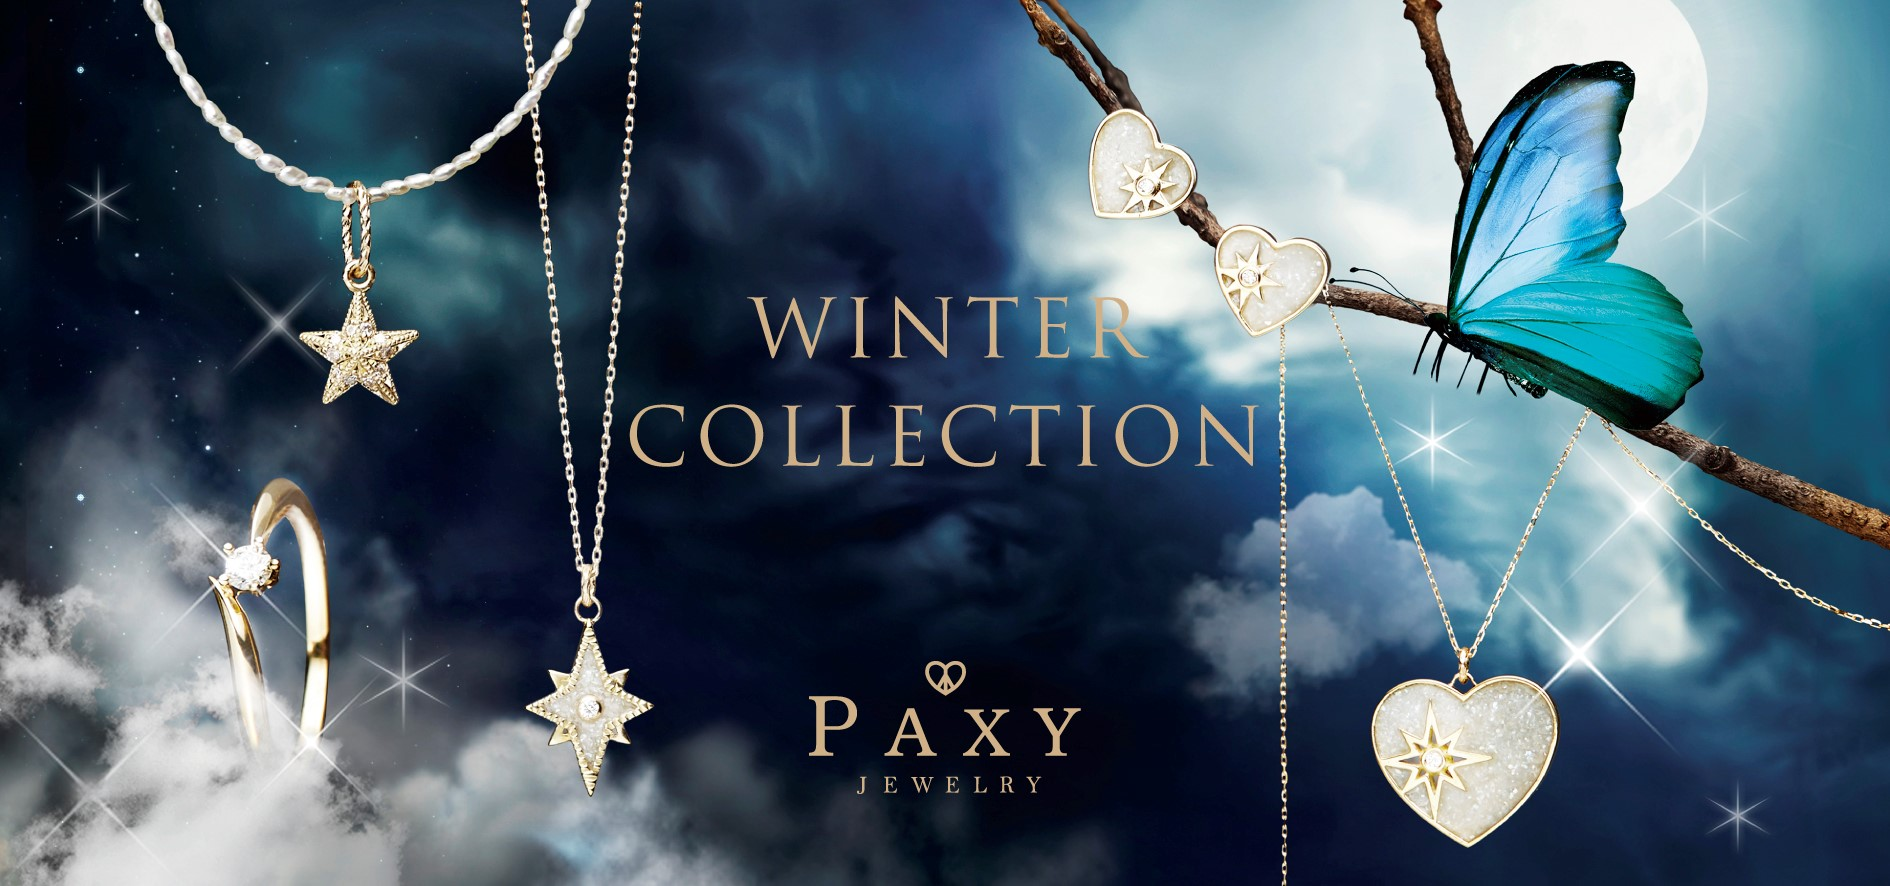 START『WINTER COLLECTION』